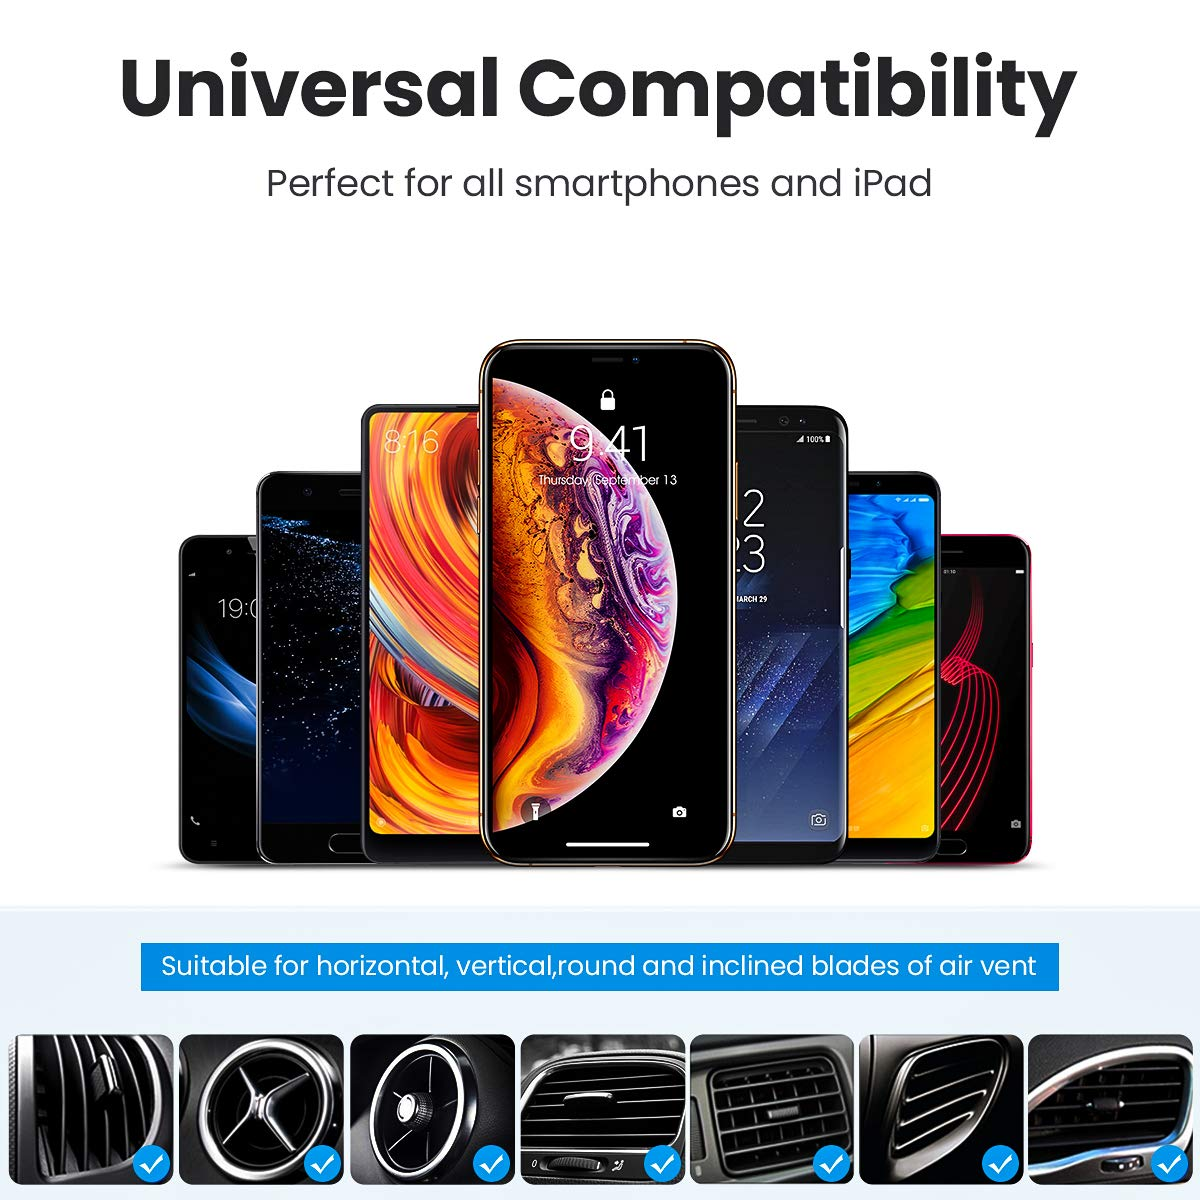 Galaxy Note 9//S8//S7 iPad Air 2//Mini 3 Ainope 6 Strong Magnets Phone Holder for Car Air Vent Cell Phone Holder Car with 360/° Rotation Compatible iPhone Xs MAX//XR//X//8//7 Magnetic Phone Car Mount